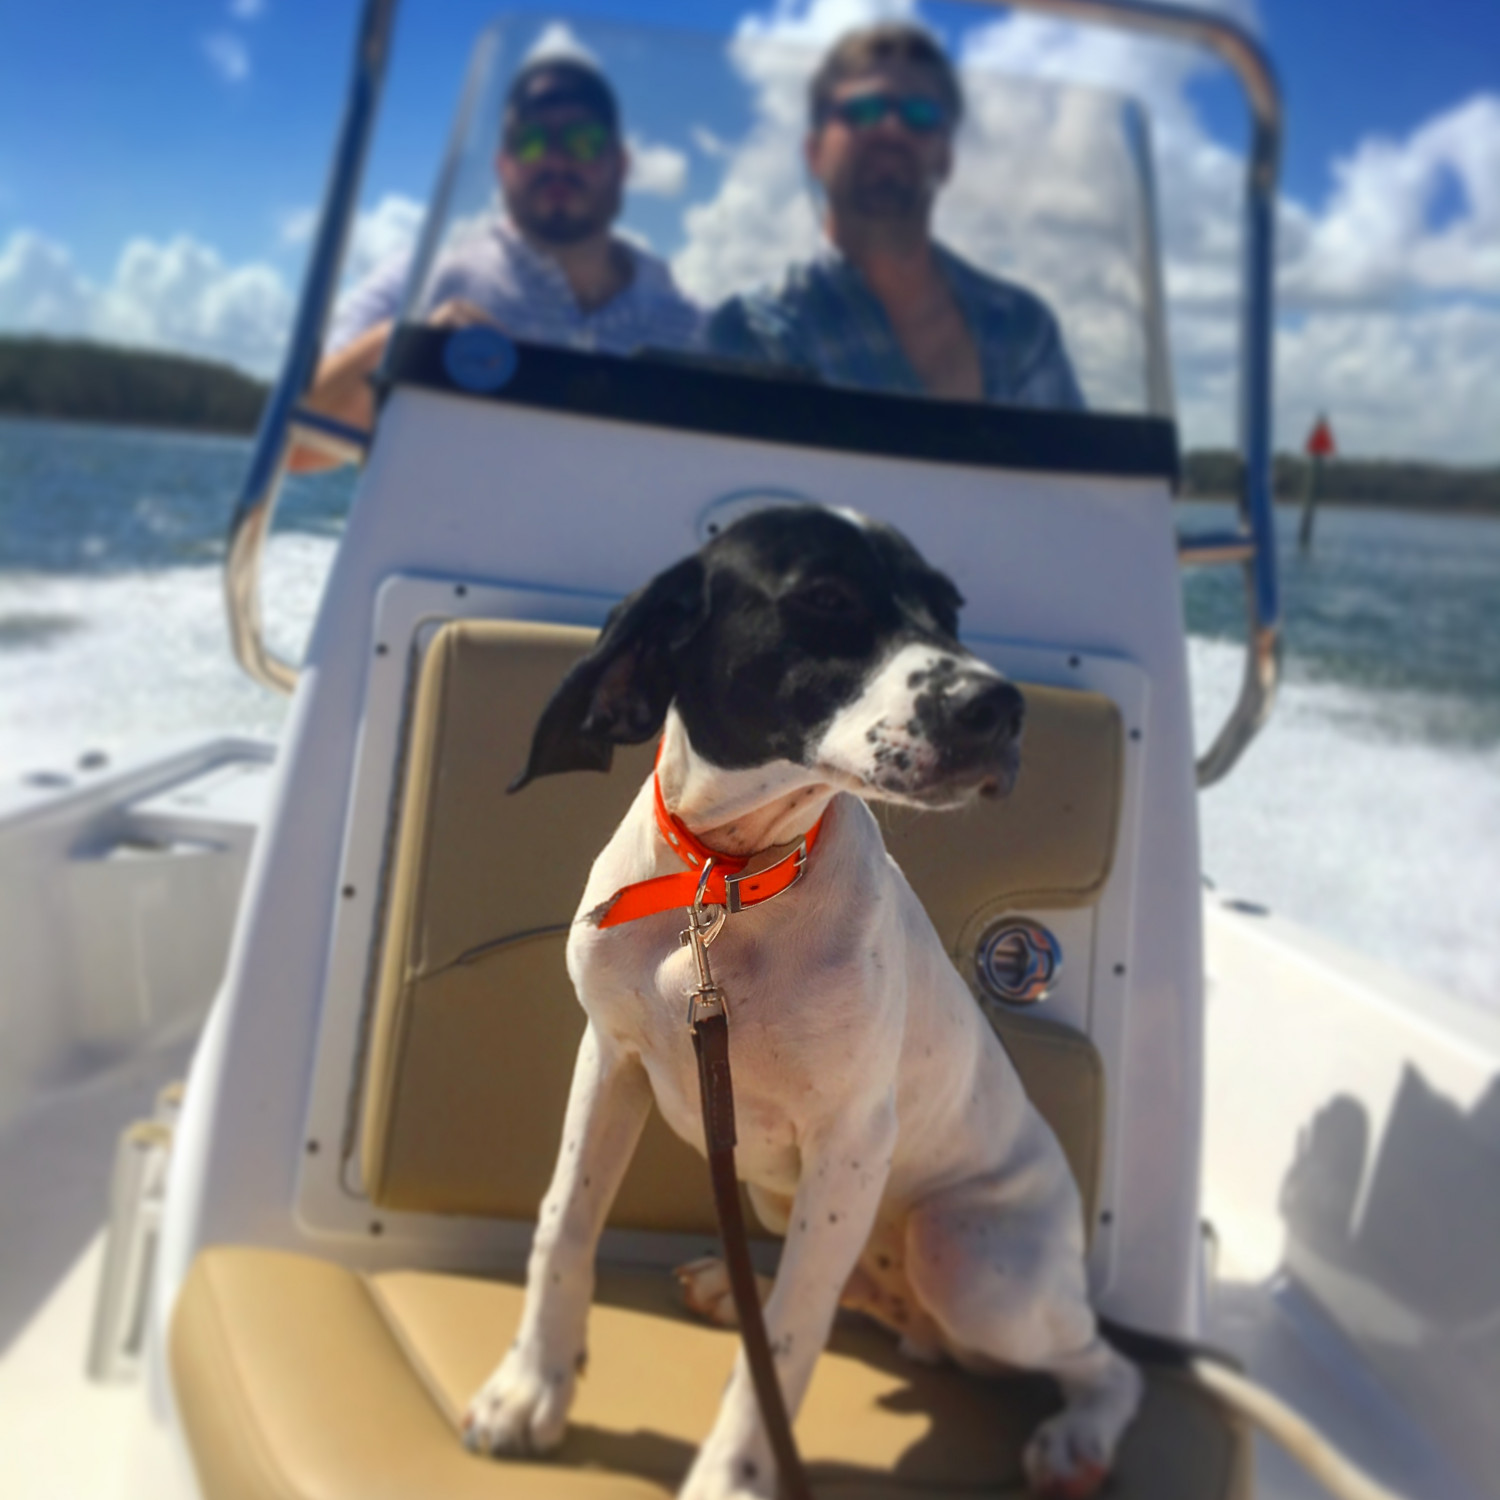 Title: Look, I'm the captain now. - On board their Sportsman Masters 207 Bay Boat - Location: Savannah, Ga. Participating in the Photo Contest #SportsmanMarch2018